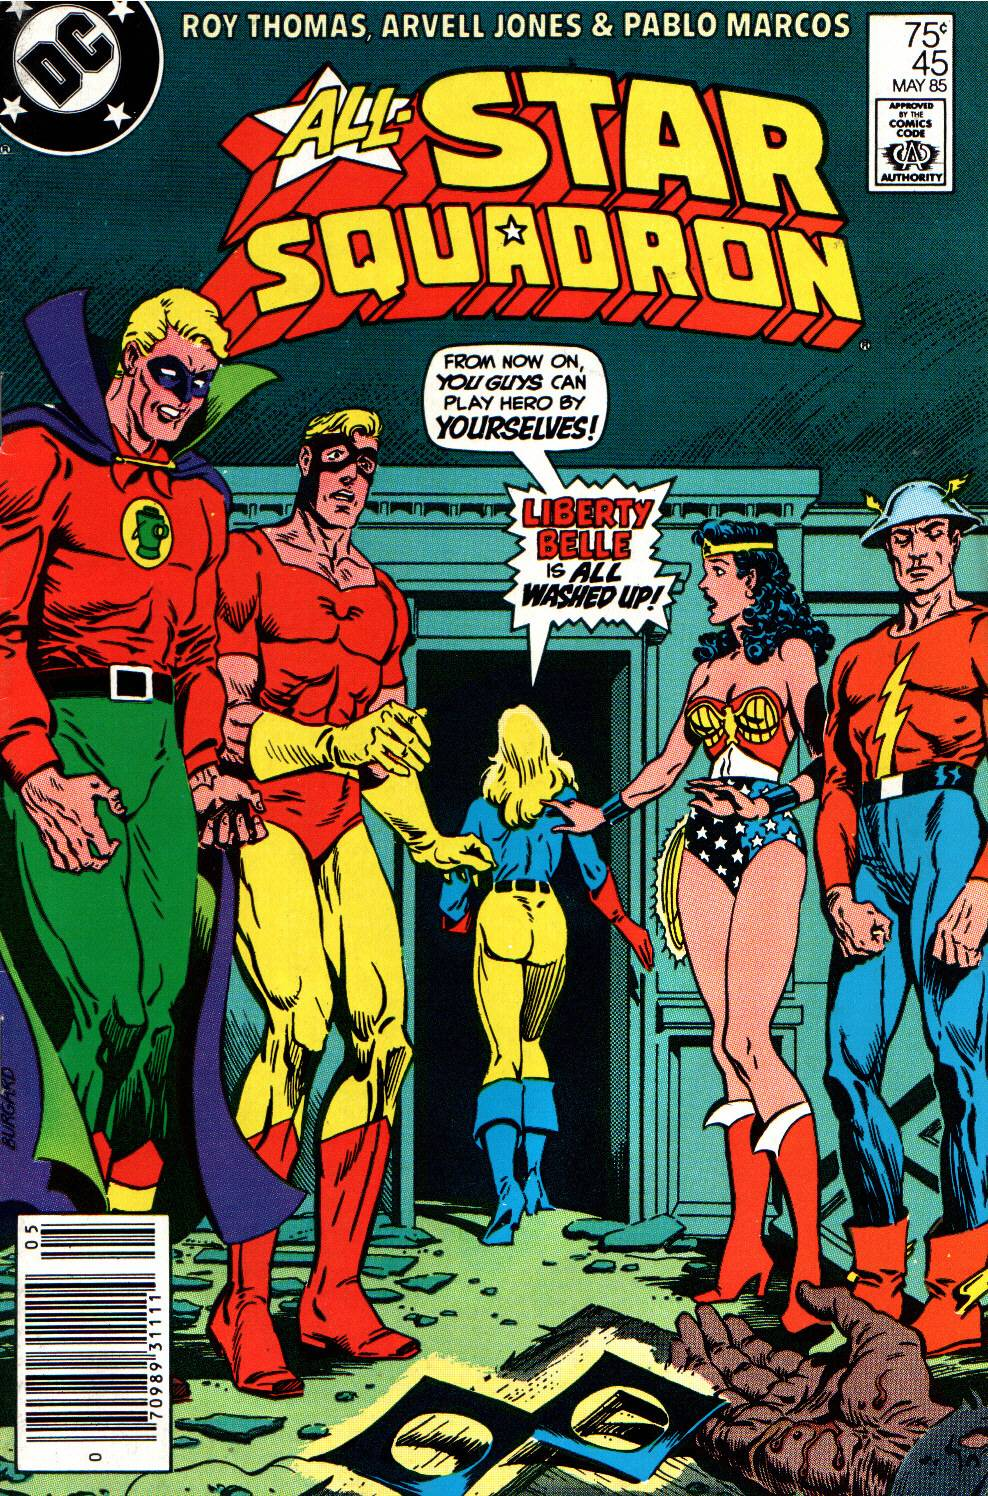 Read online All-Star Squadron comic -  Issue #45 - 1